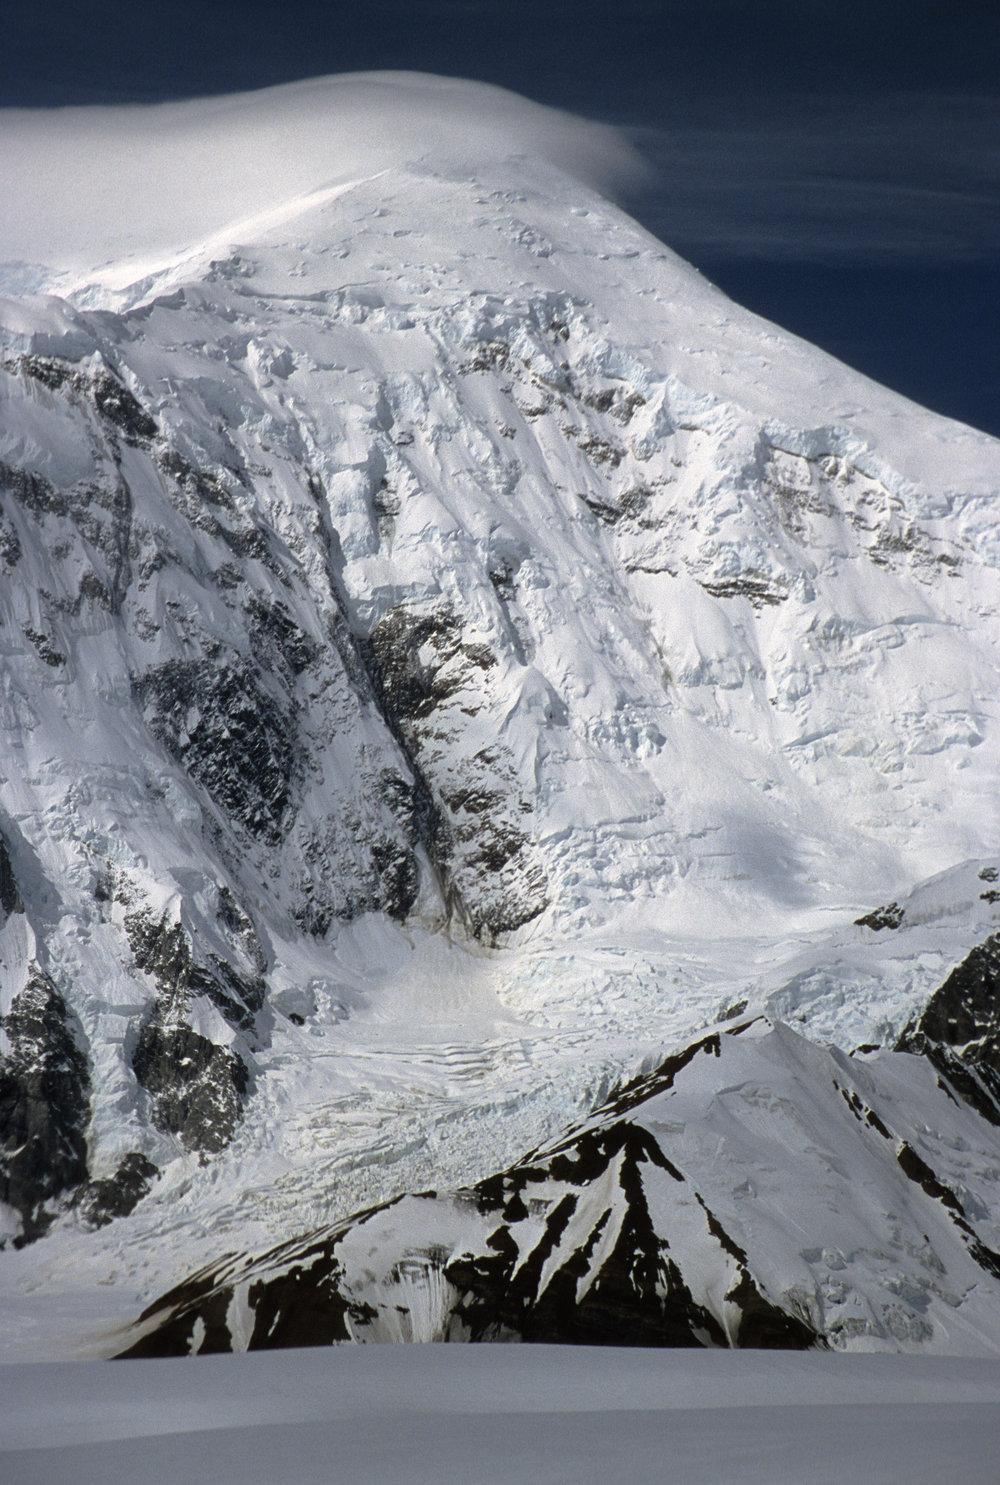 North Face of Mt. Foraker 17,400 ft